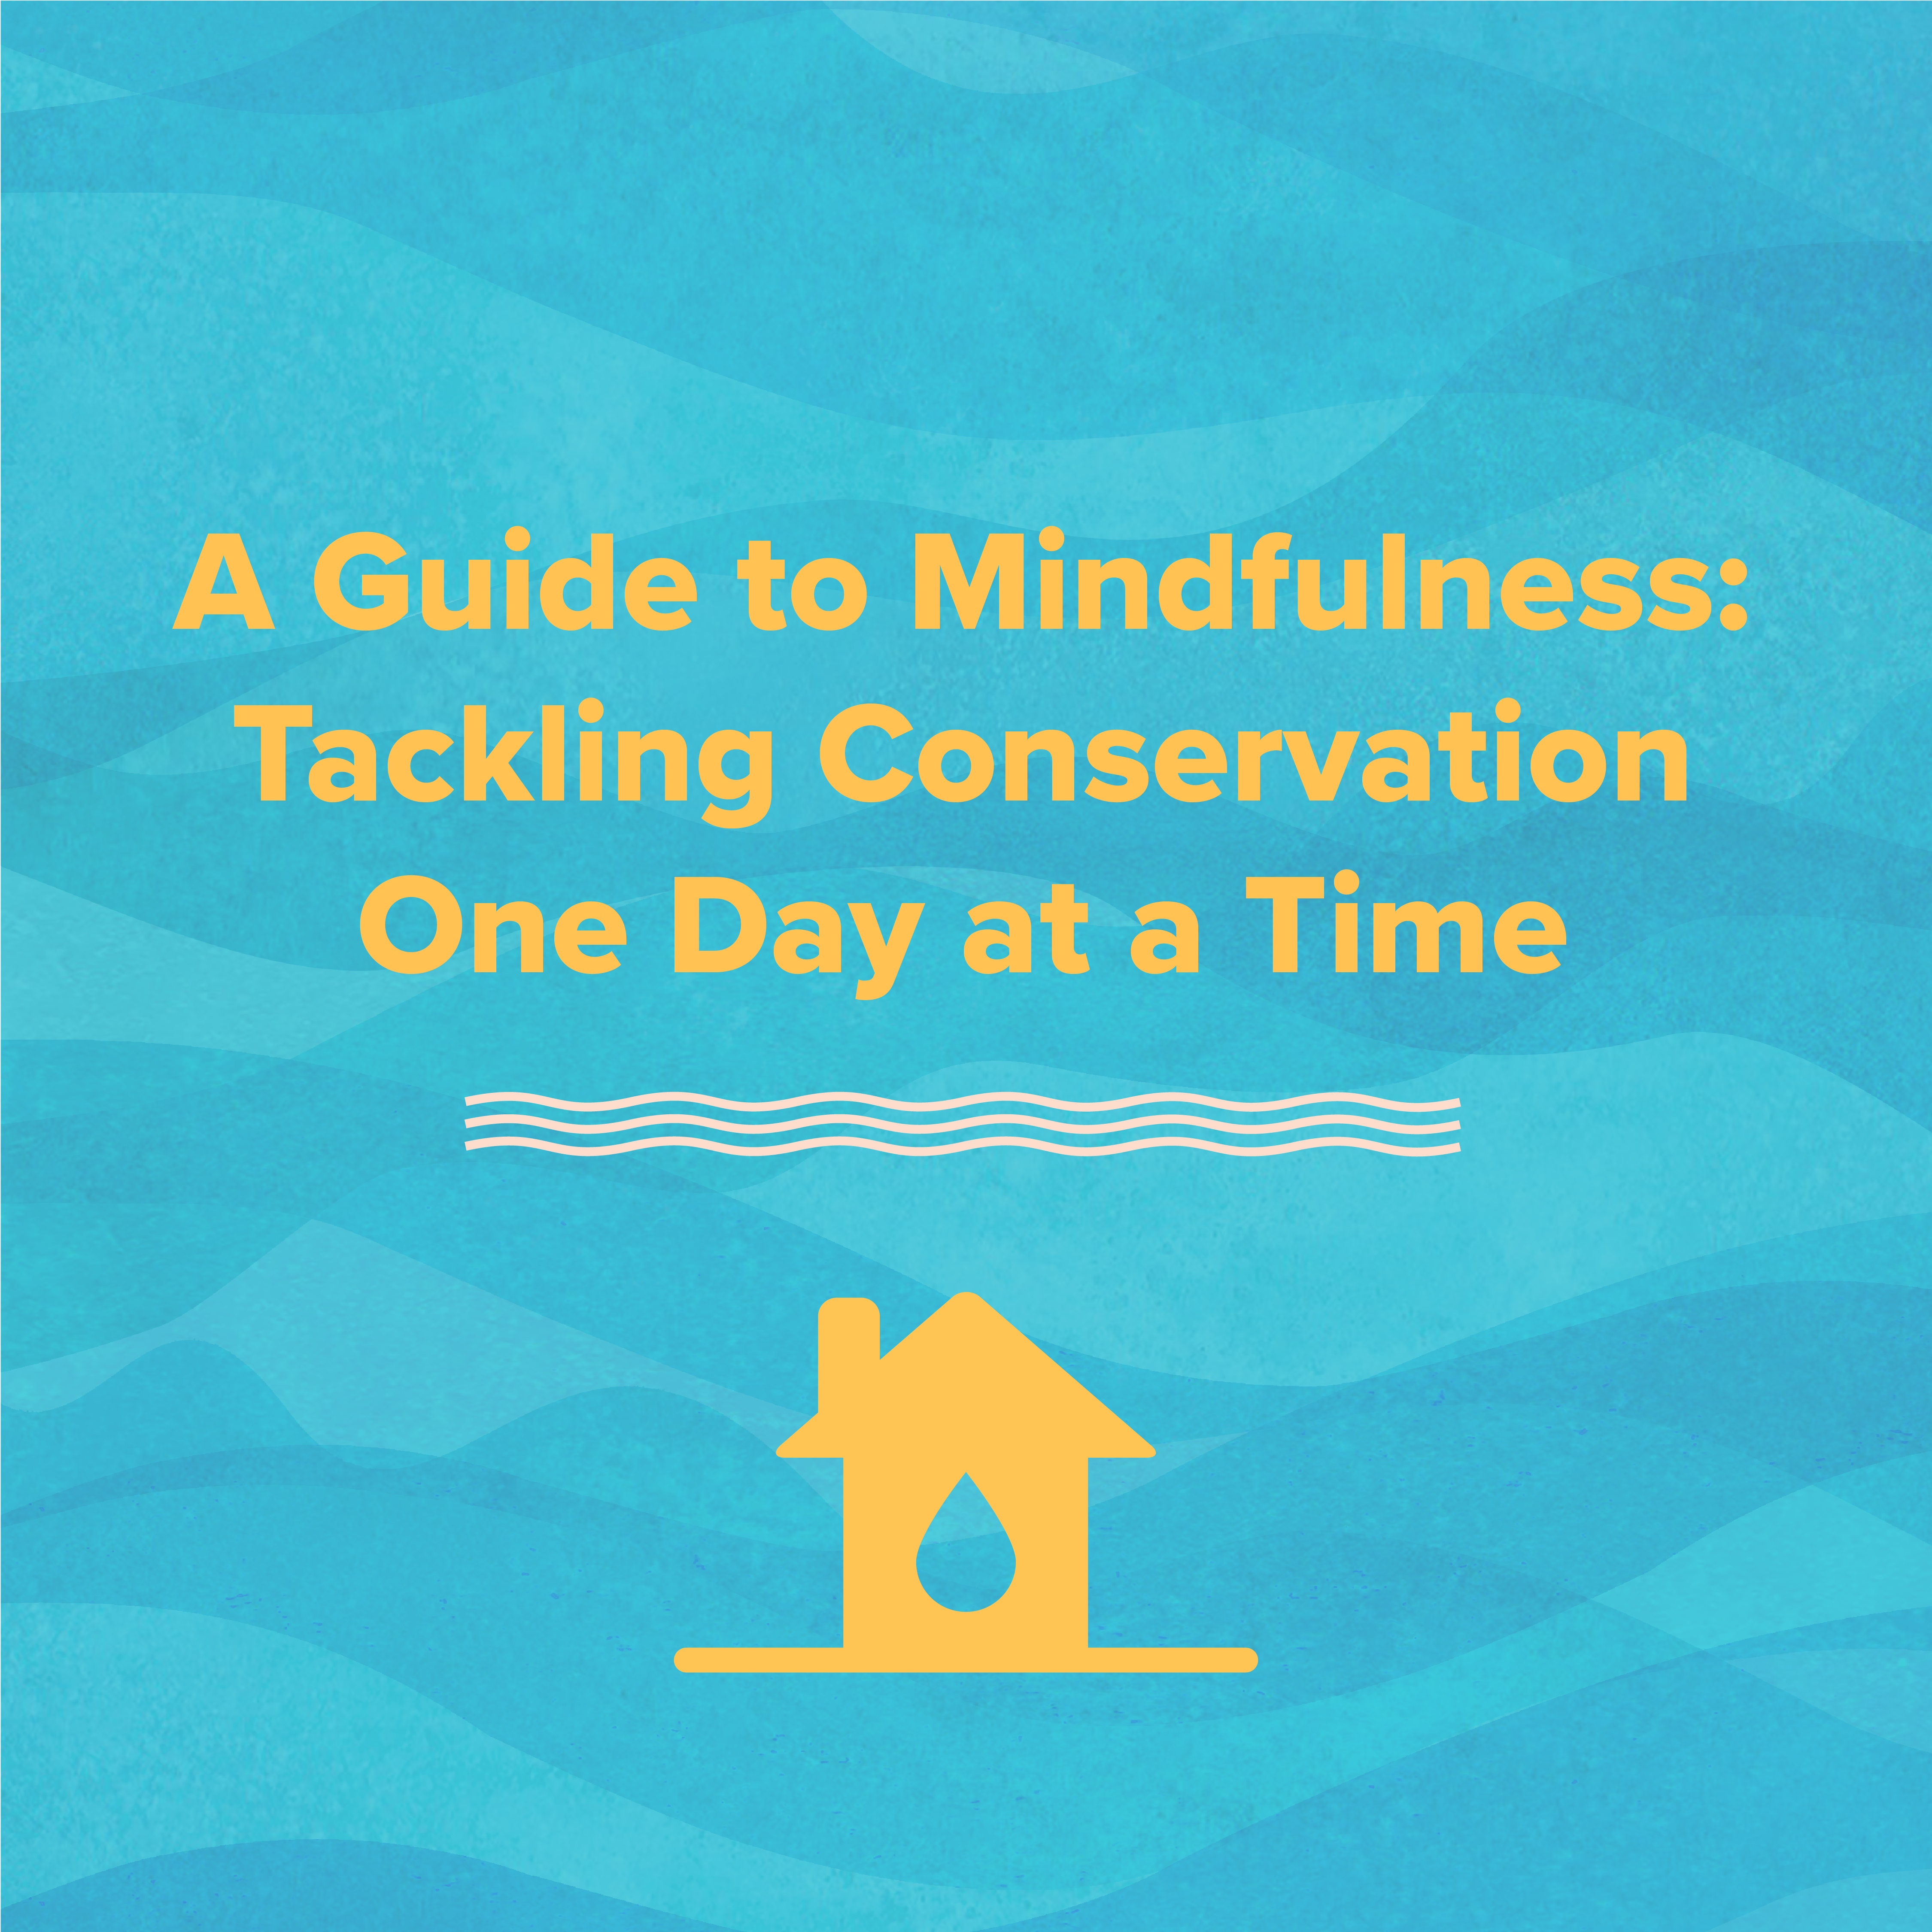 A Guide to Mindfulness: Tackling Environmental Conservation One Day at a Time